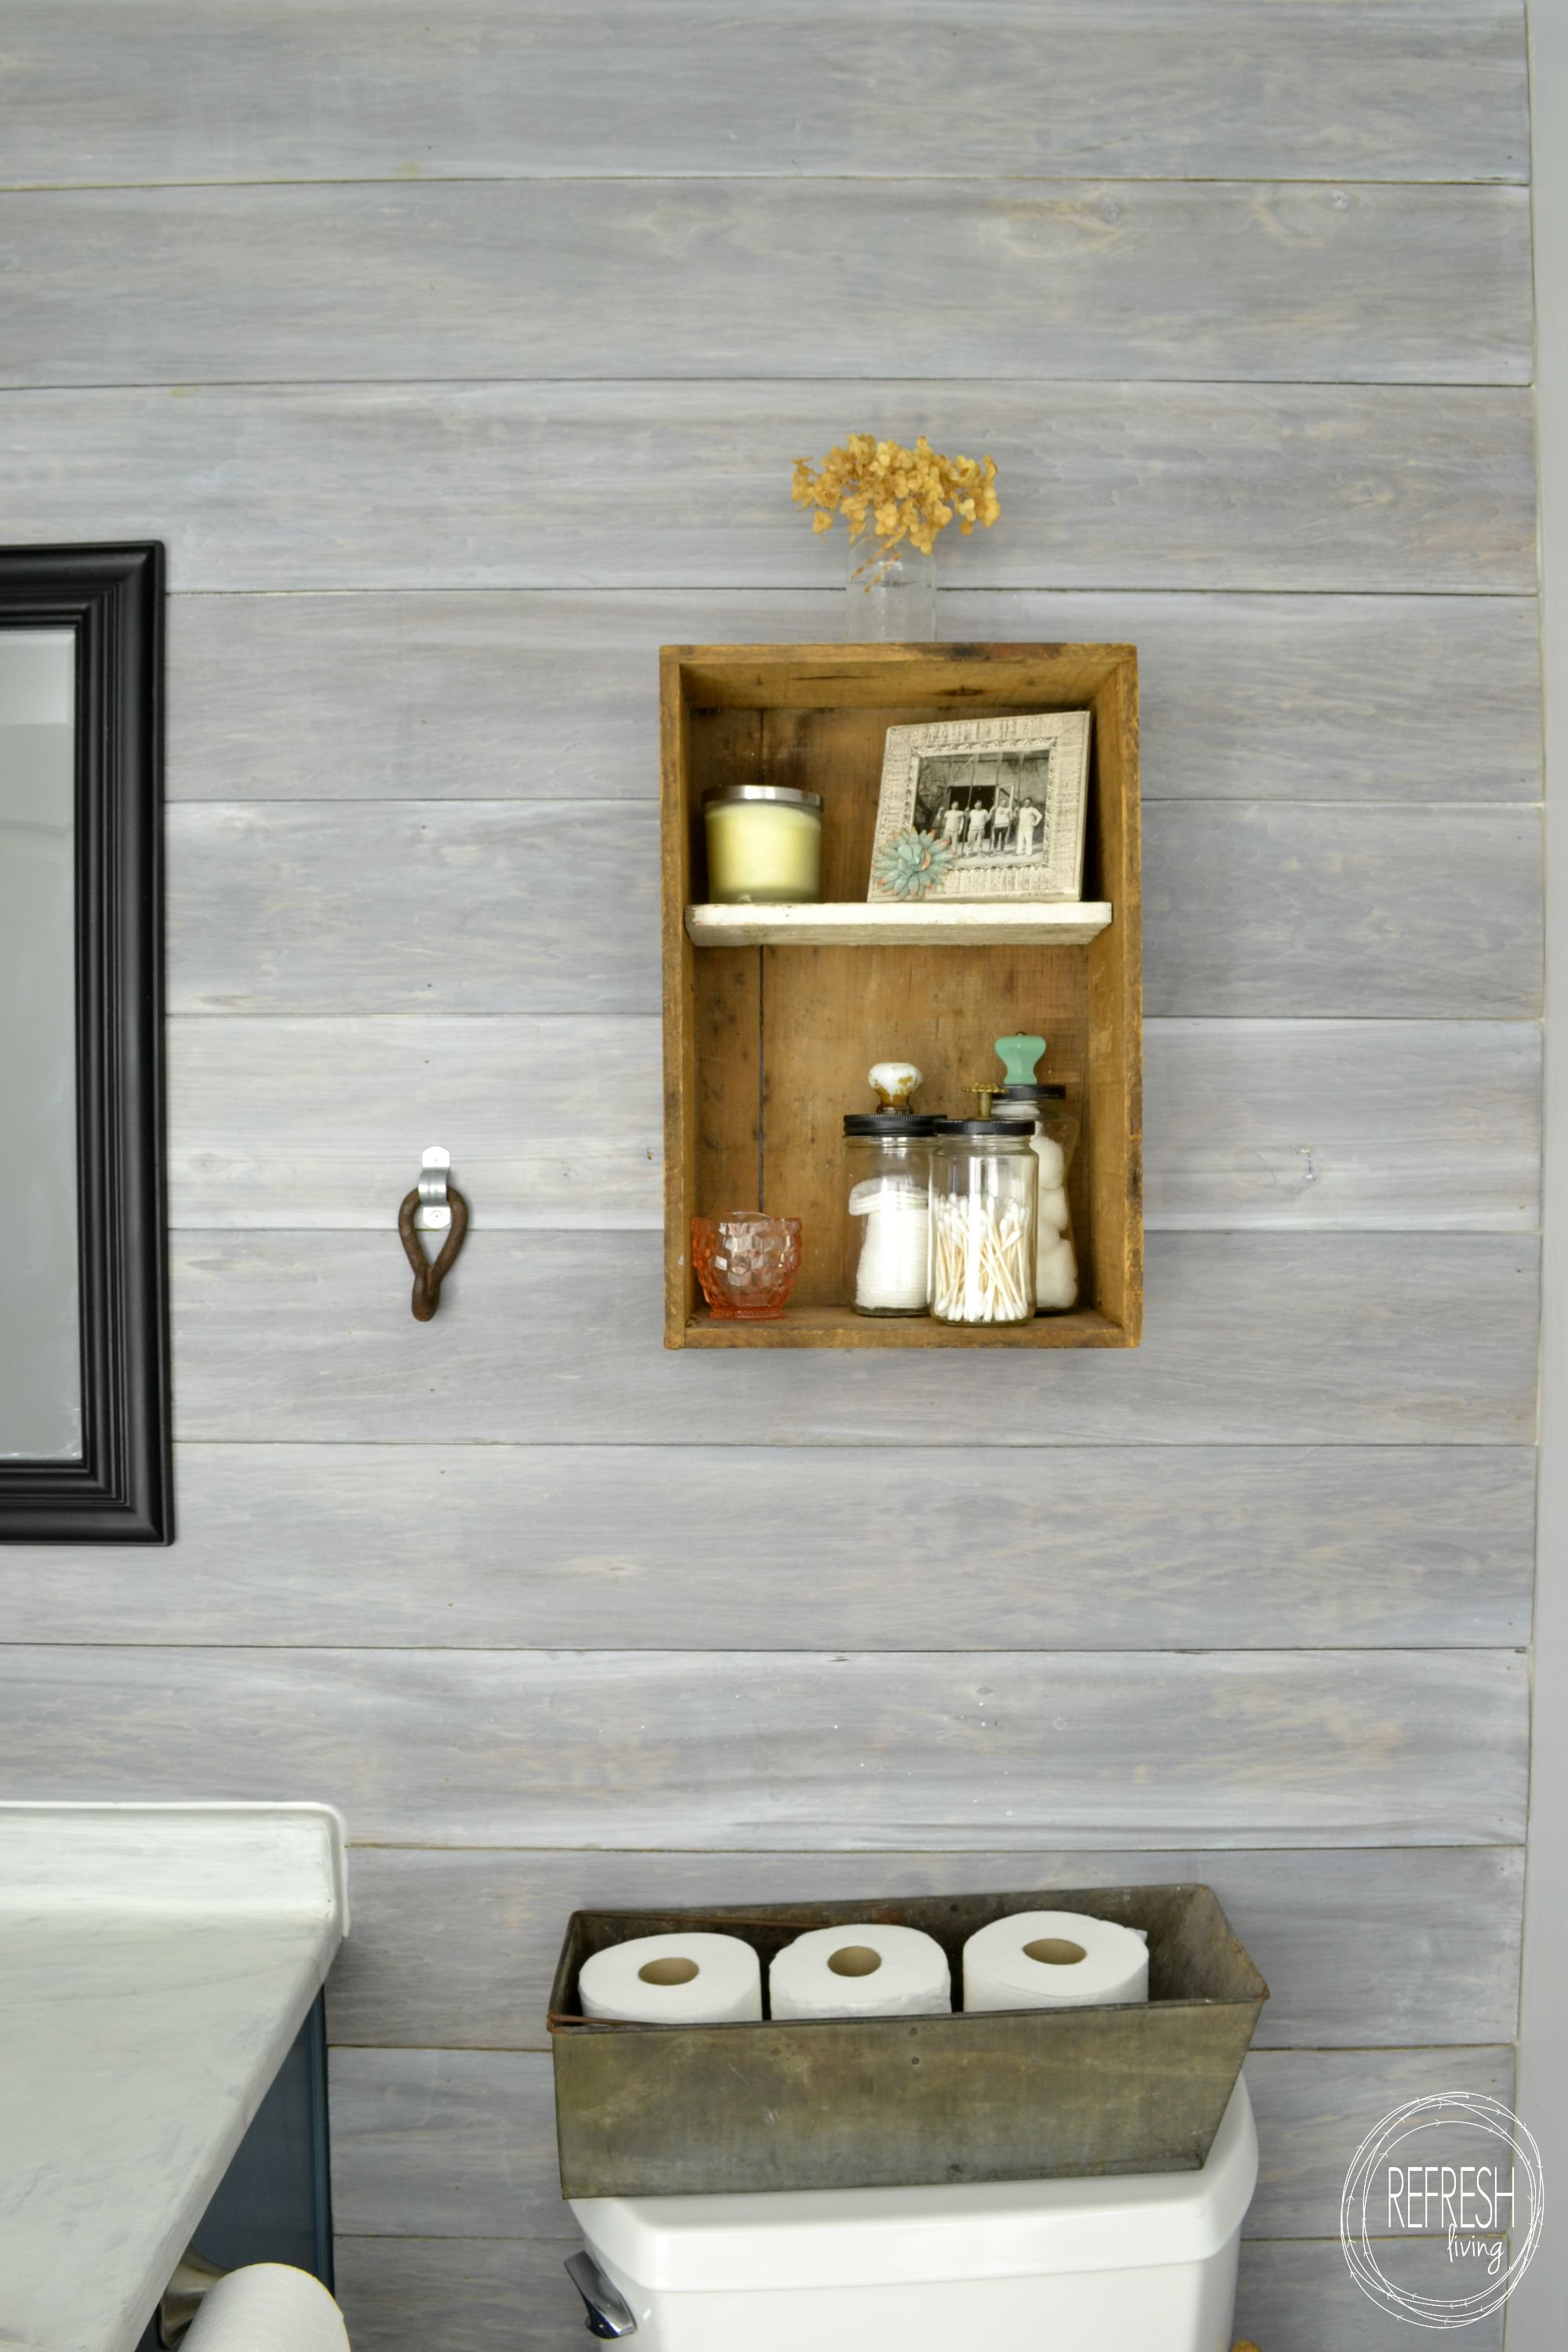 Whitewash Bathroom Vanity Budget Renovation: Install Your Own Planked Wall - Refresh